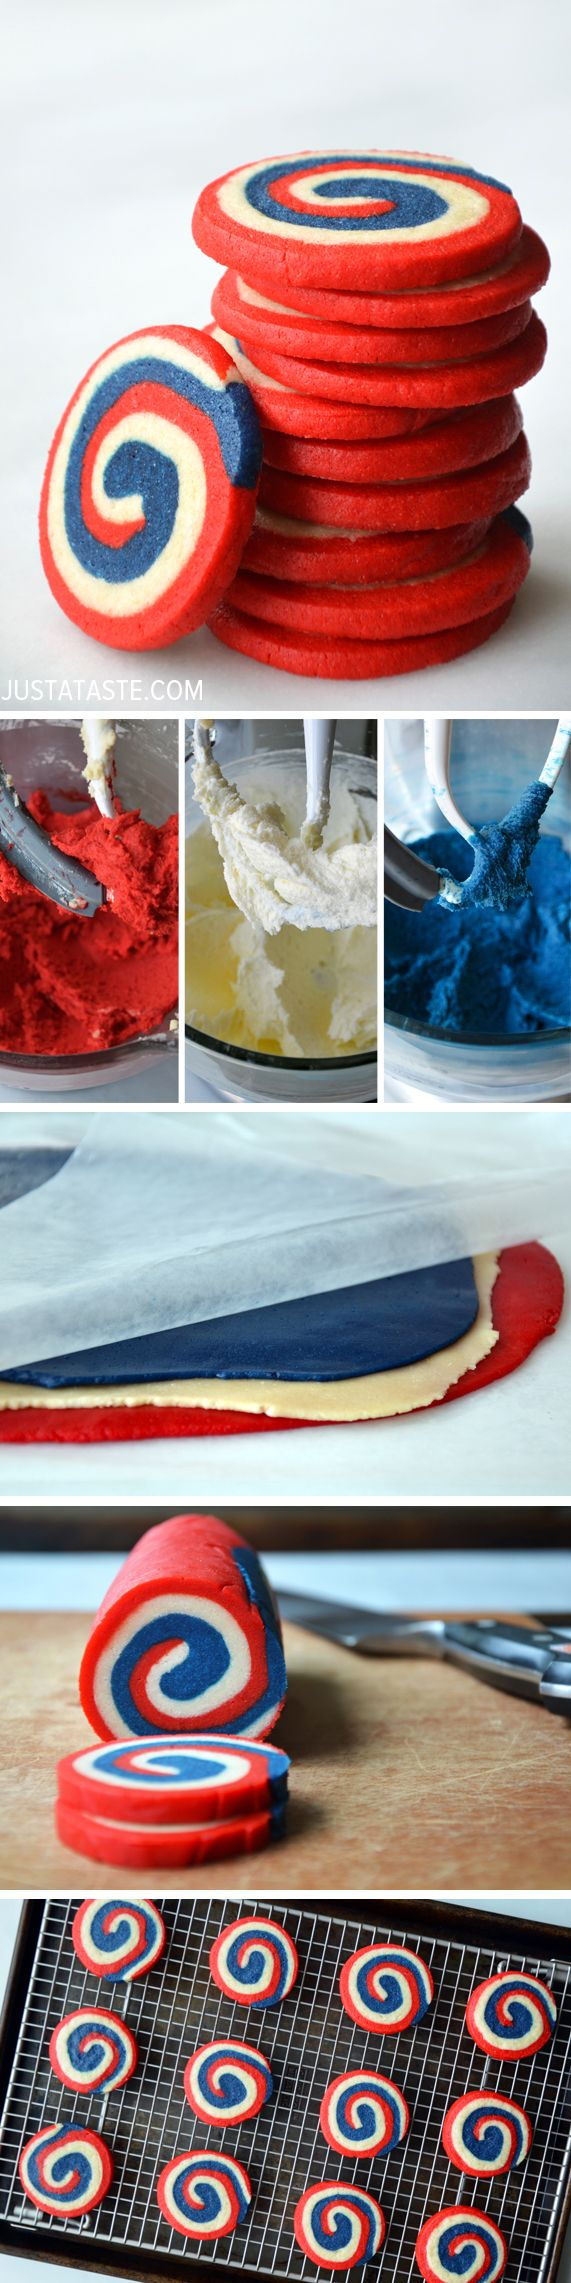 Captain America cookies! Red, White and Blue Pinwheel Icebox Cookies #recipe #july4th